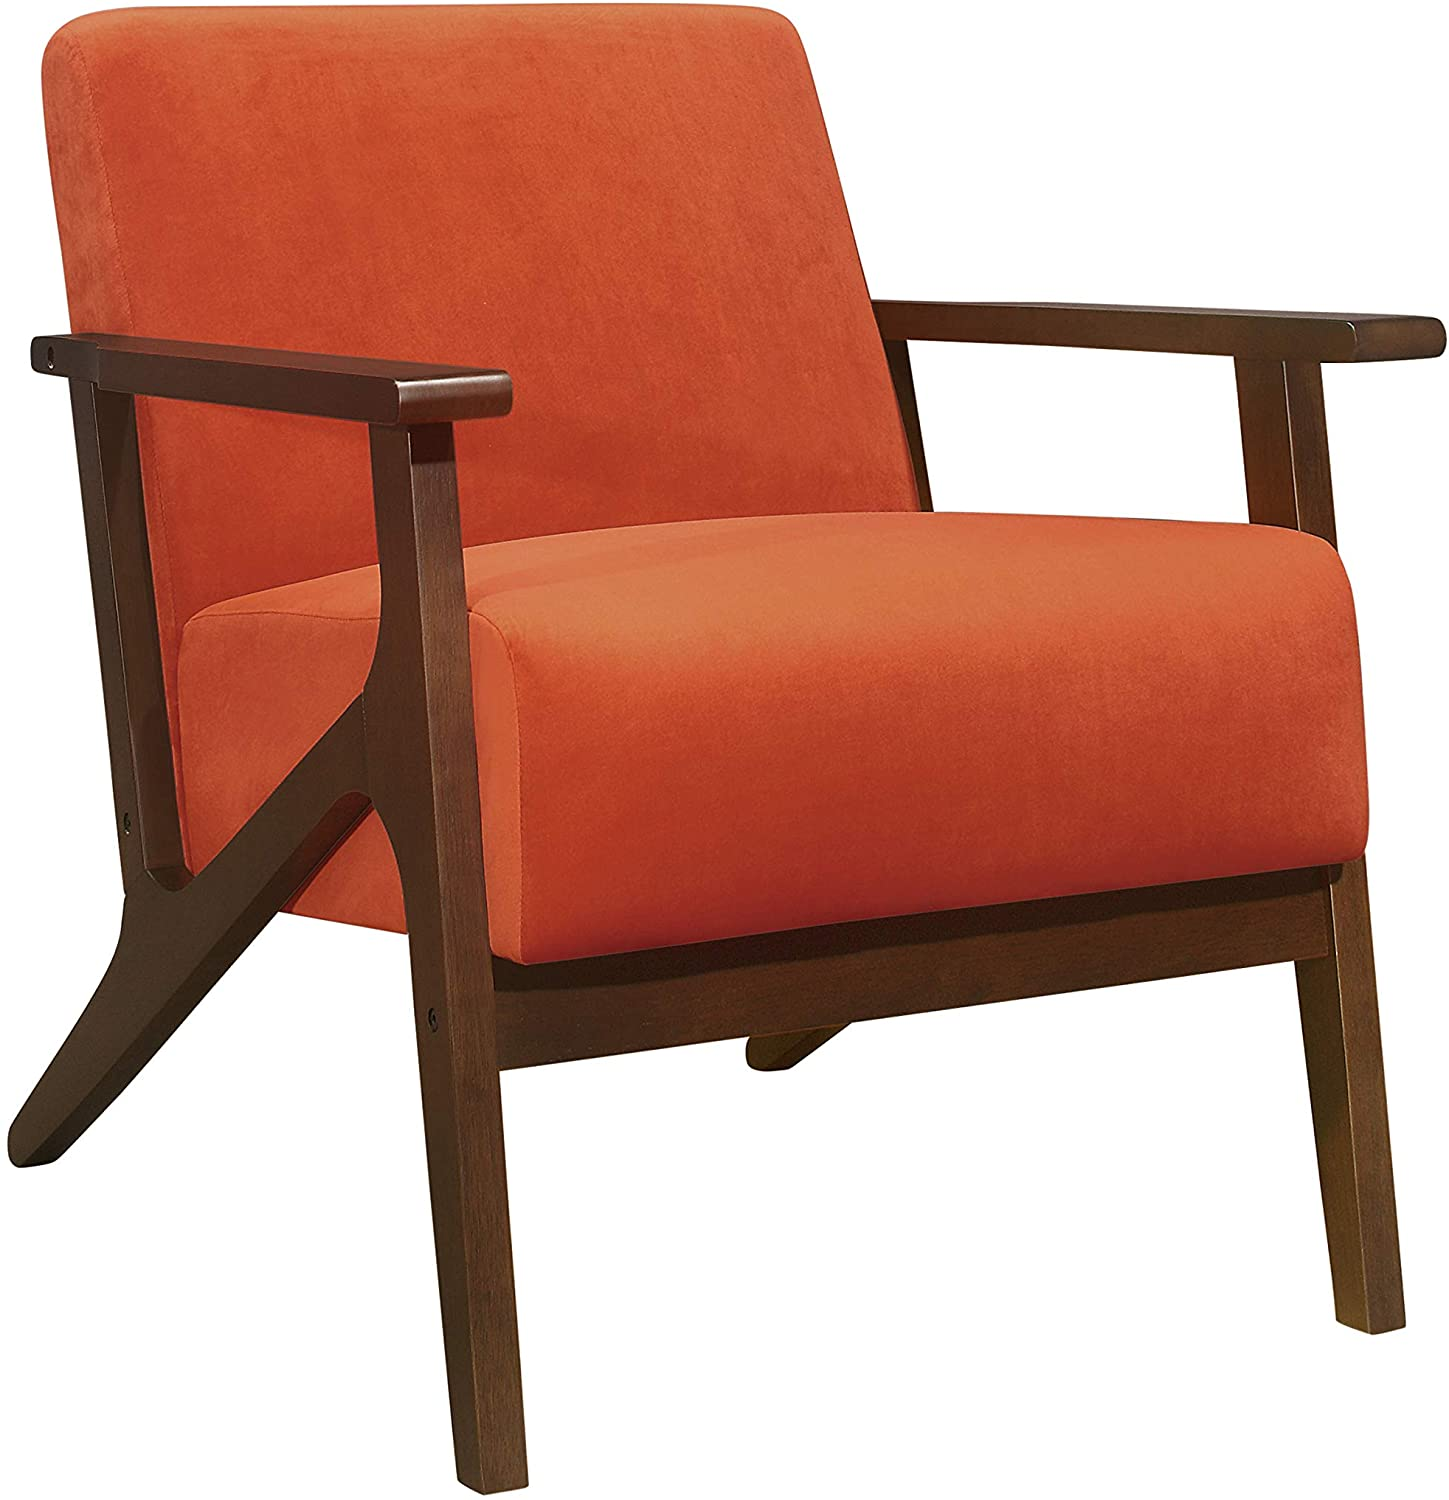 Fiknod wooden Accent Chair, Arm Chair Orange